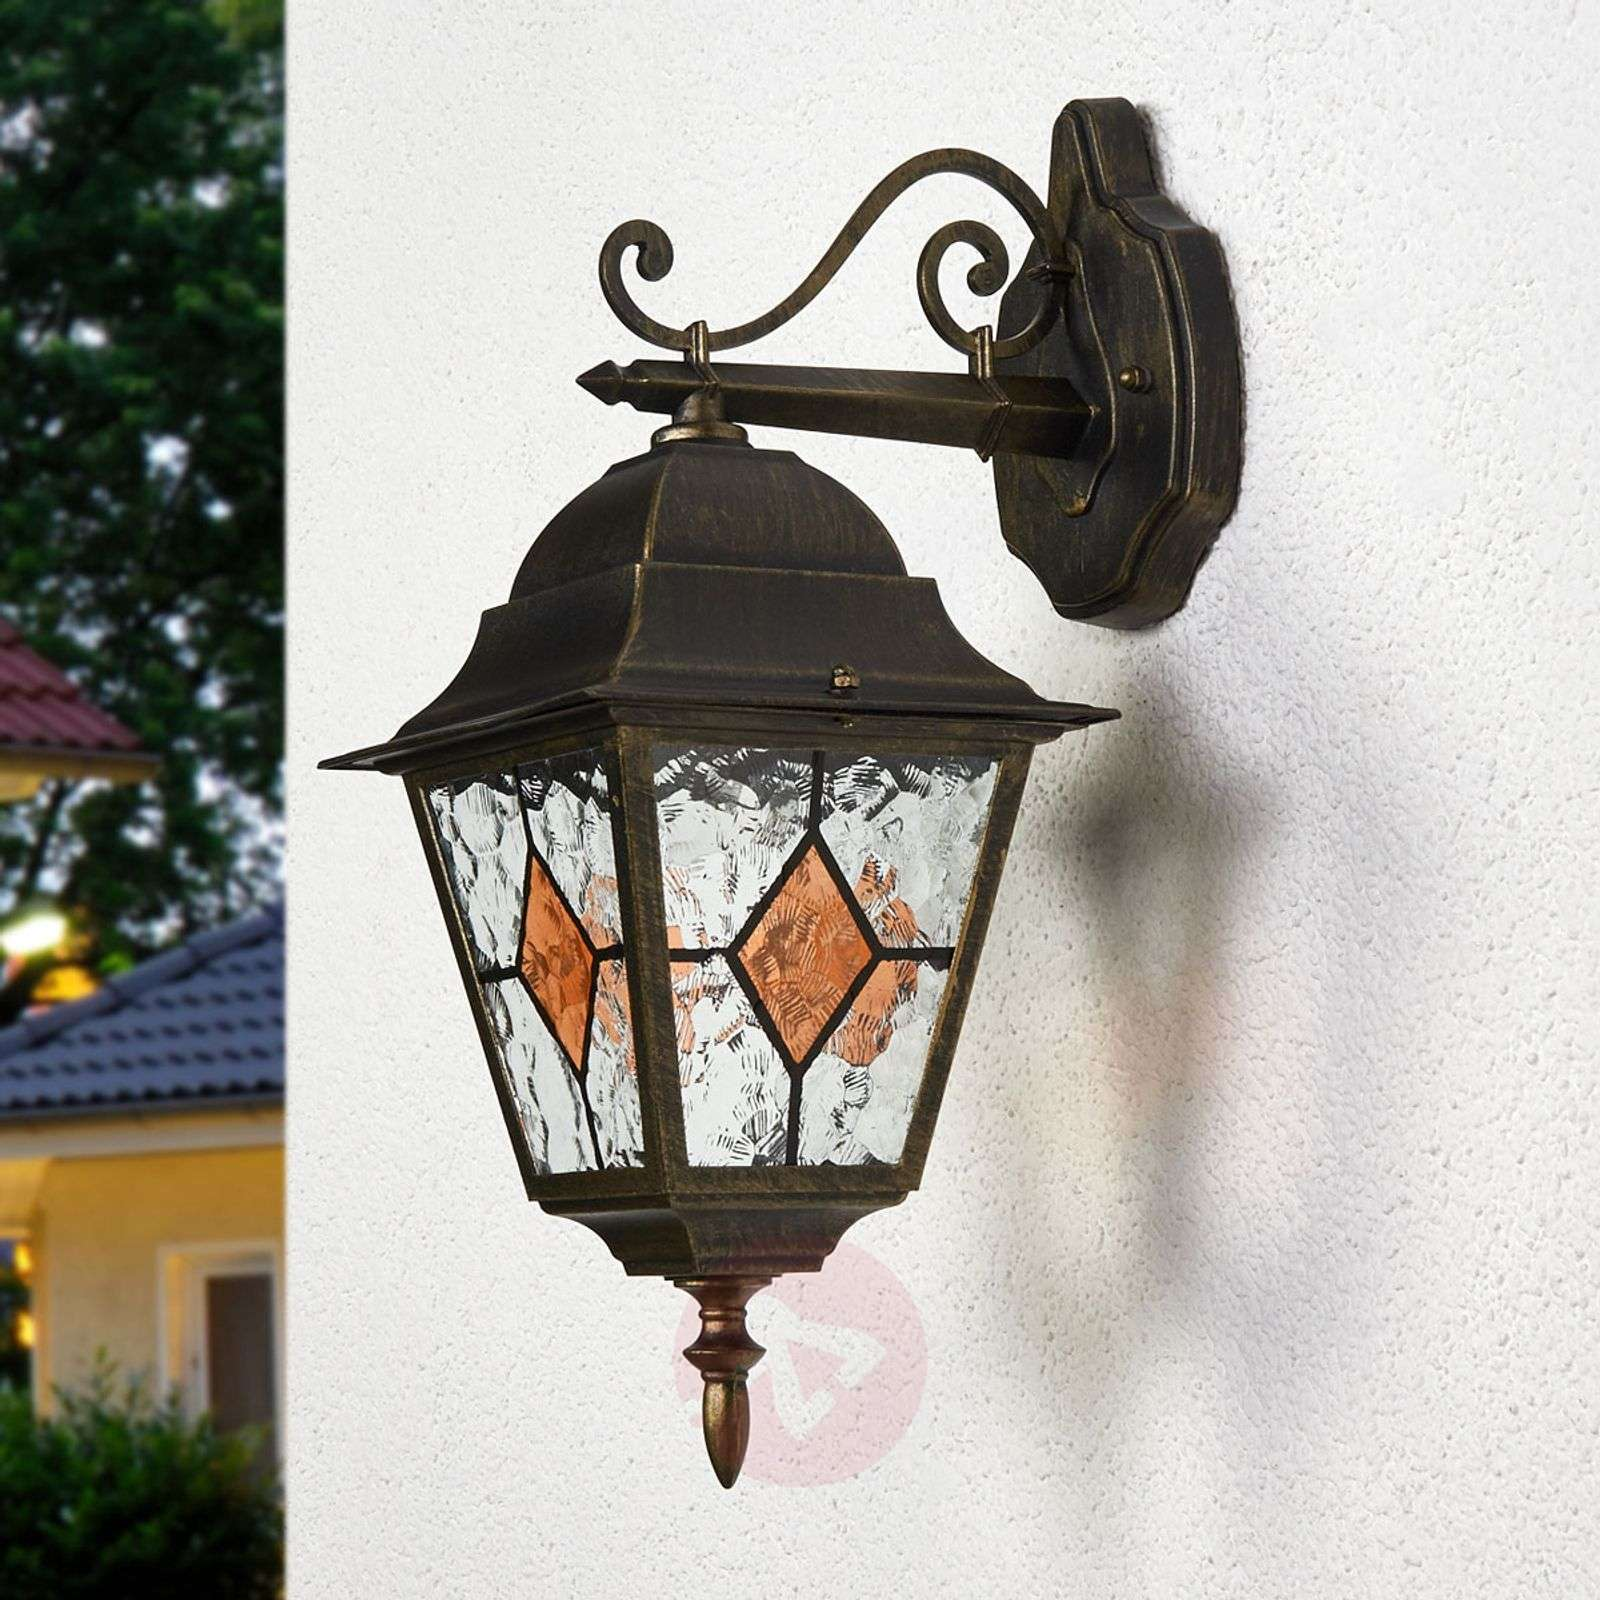 Jason traditional outdoor wall light-1507257-01